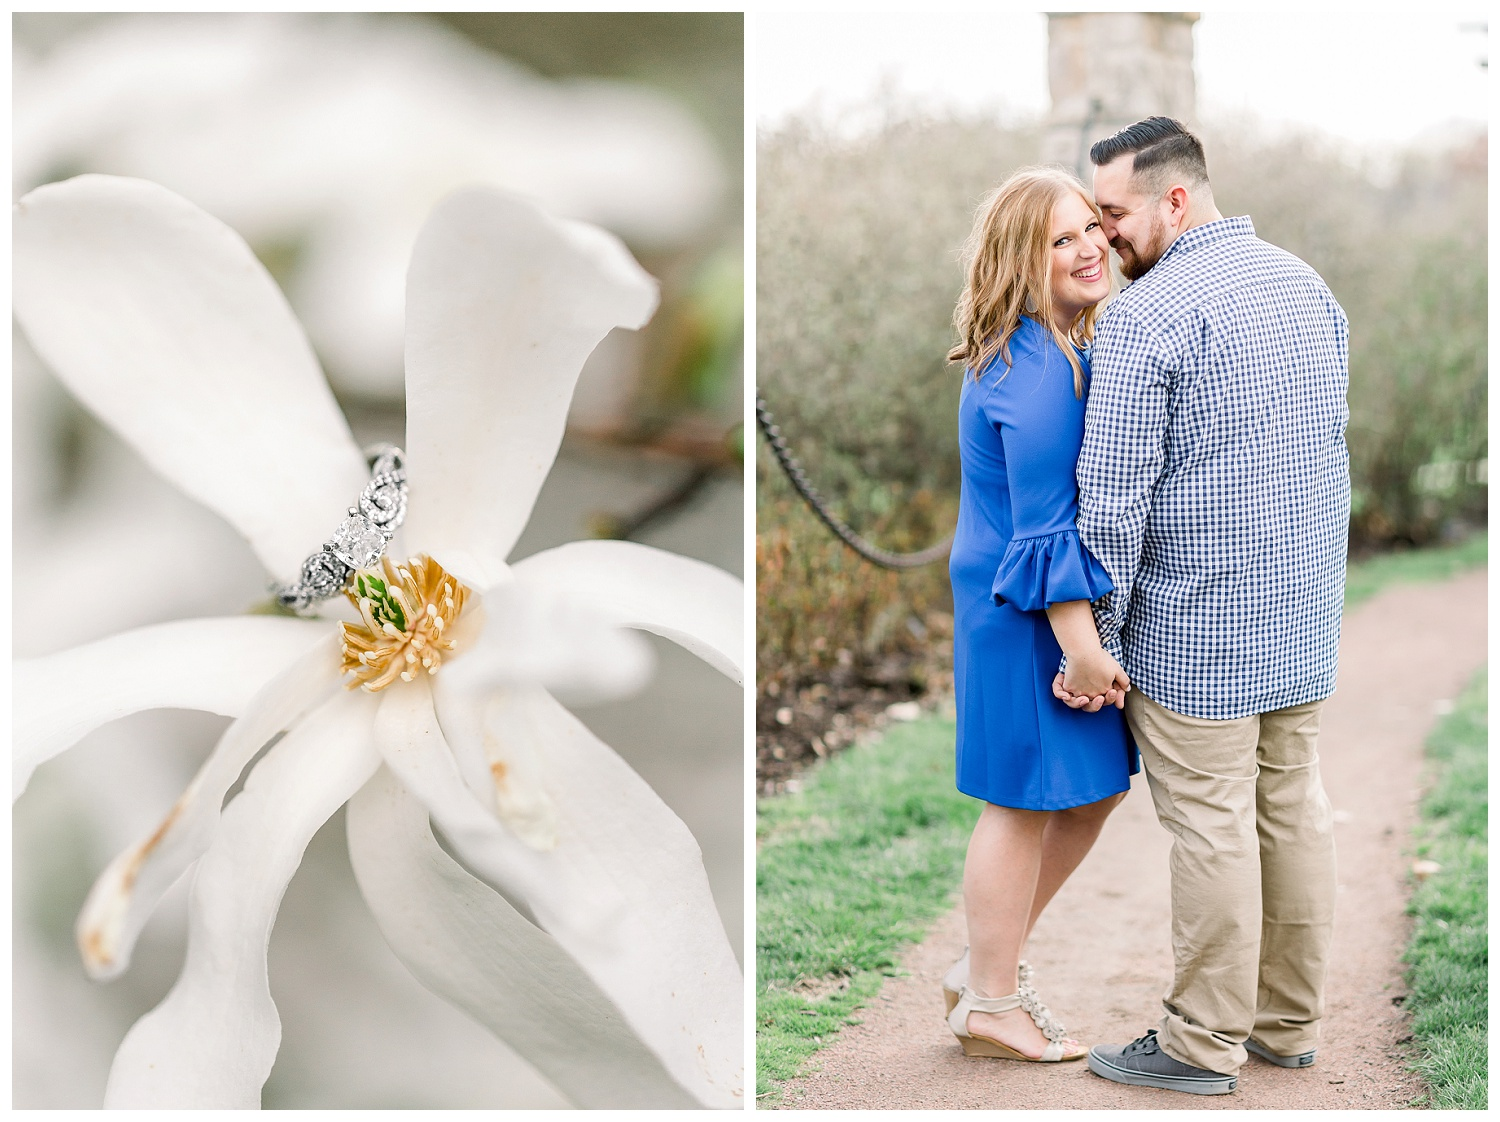 Engagement-Photos-at-Loose-Park-Springtime-KC-Elizabeth-Ladean-Photography_A+D-0407--_6880.jpg